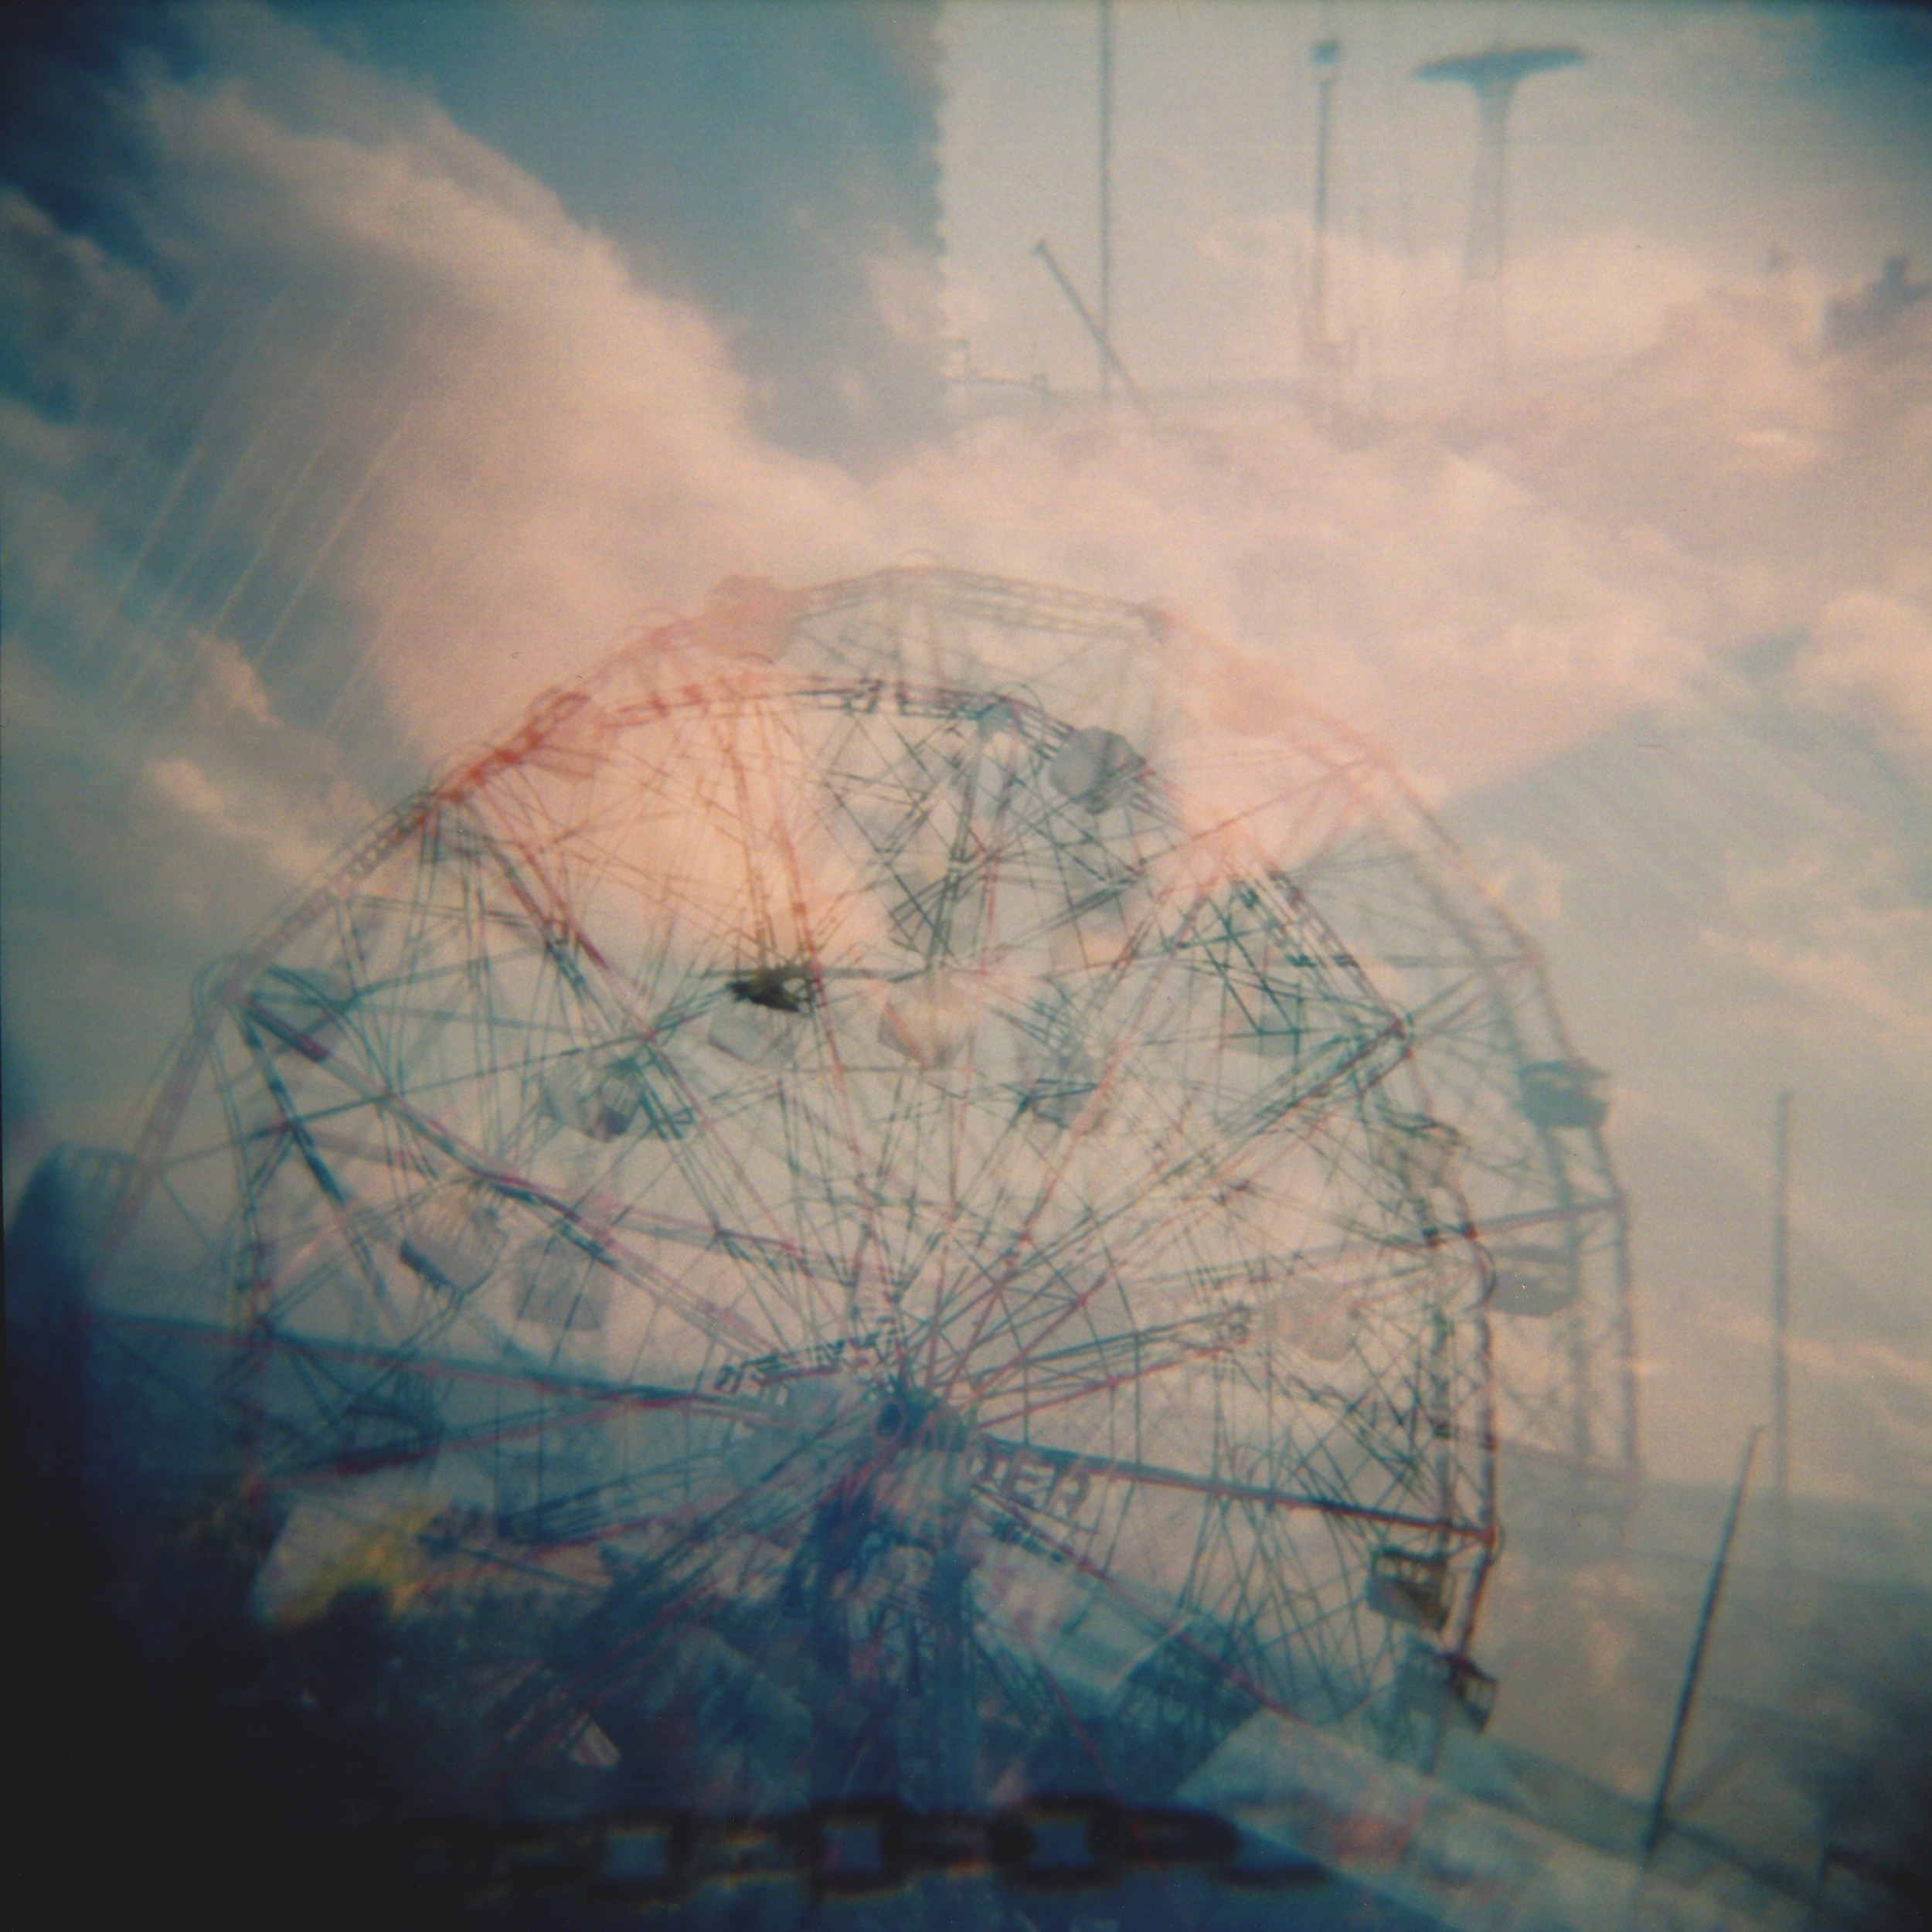 Wonder Wheel 2011, Colour 120mm film Holga camera